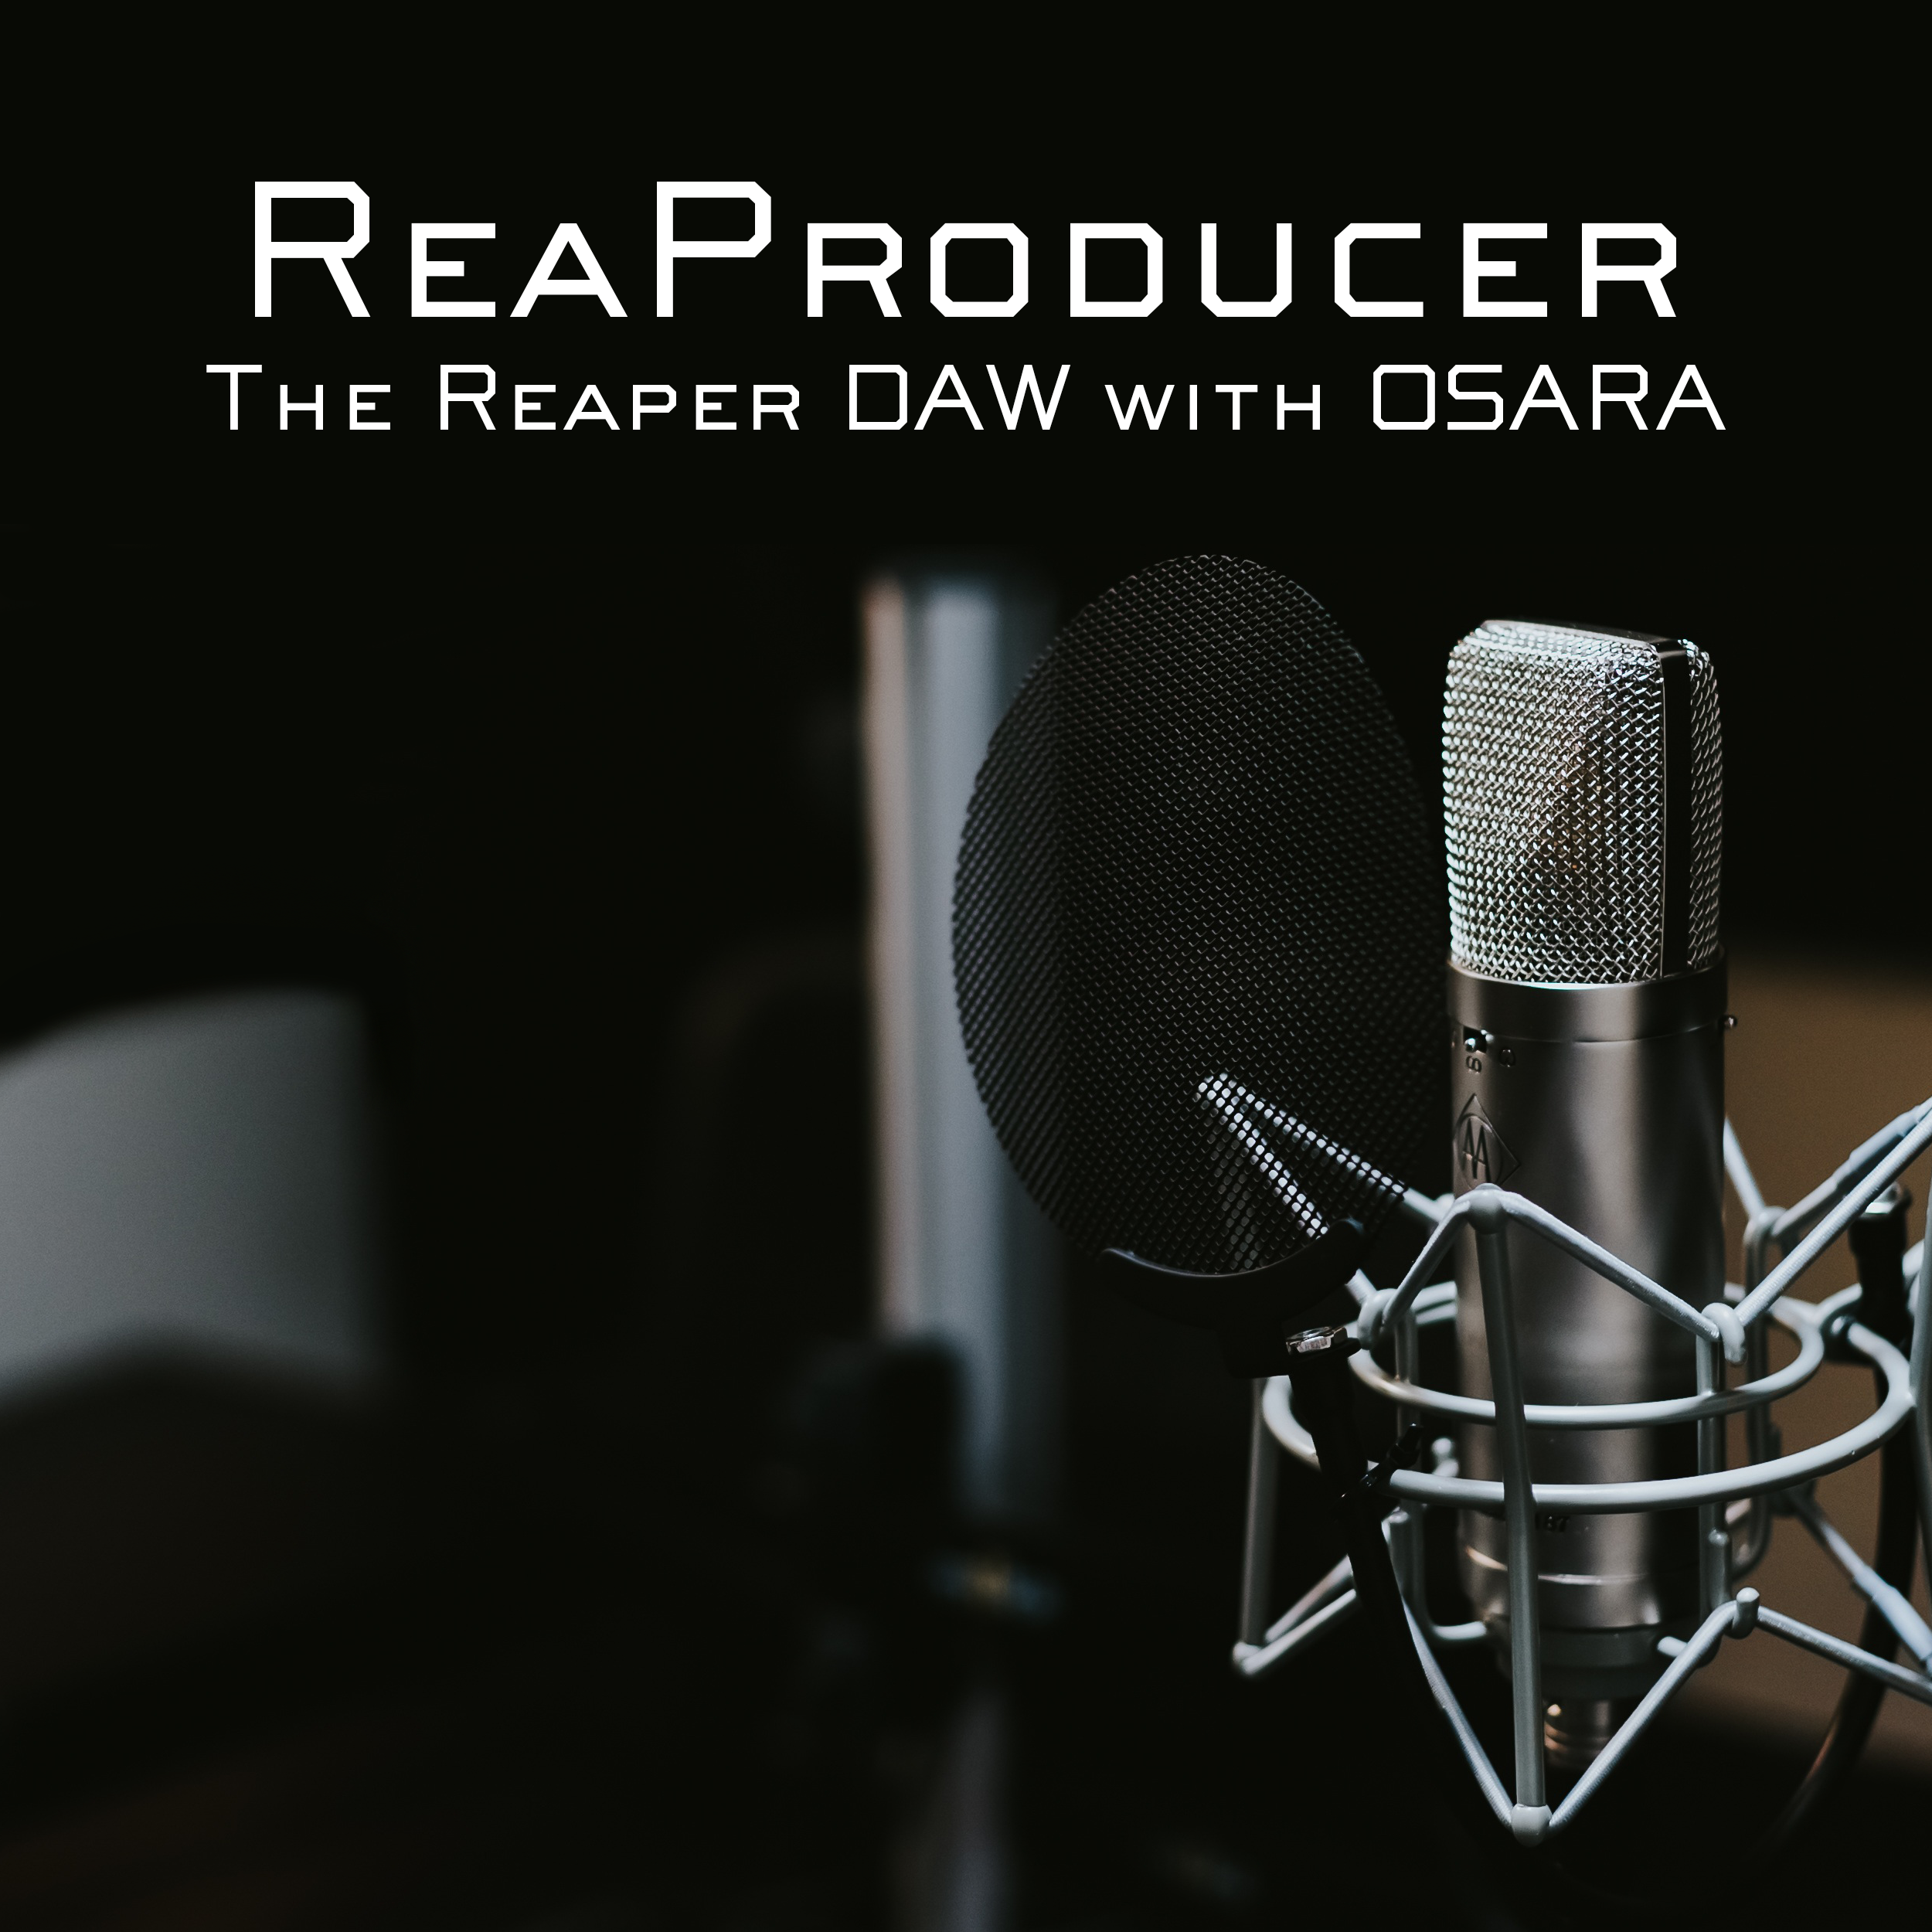 ReaProducer - Accessible Audio Production with Reaper show art